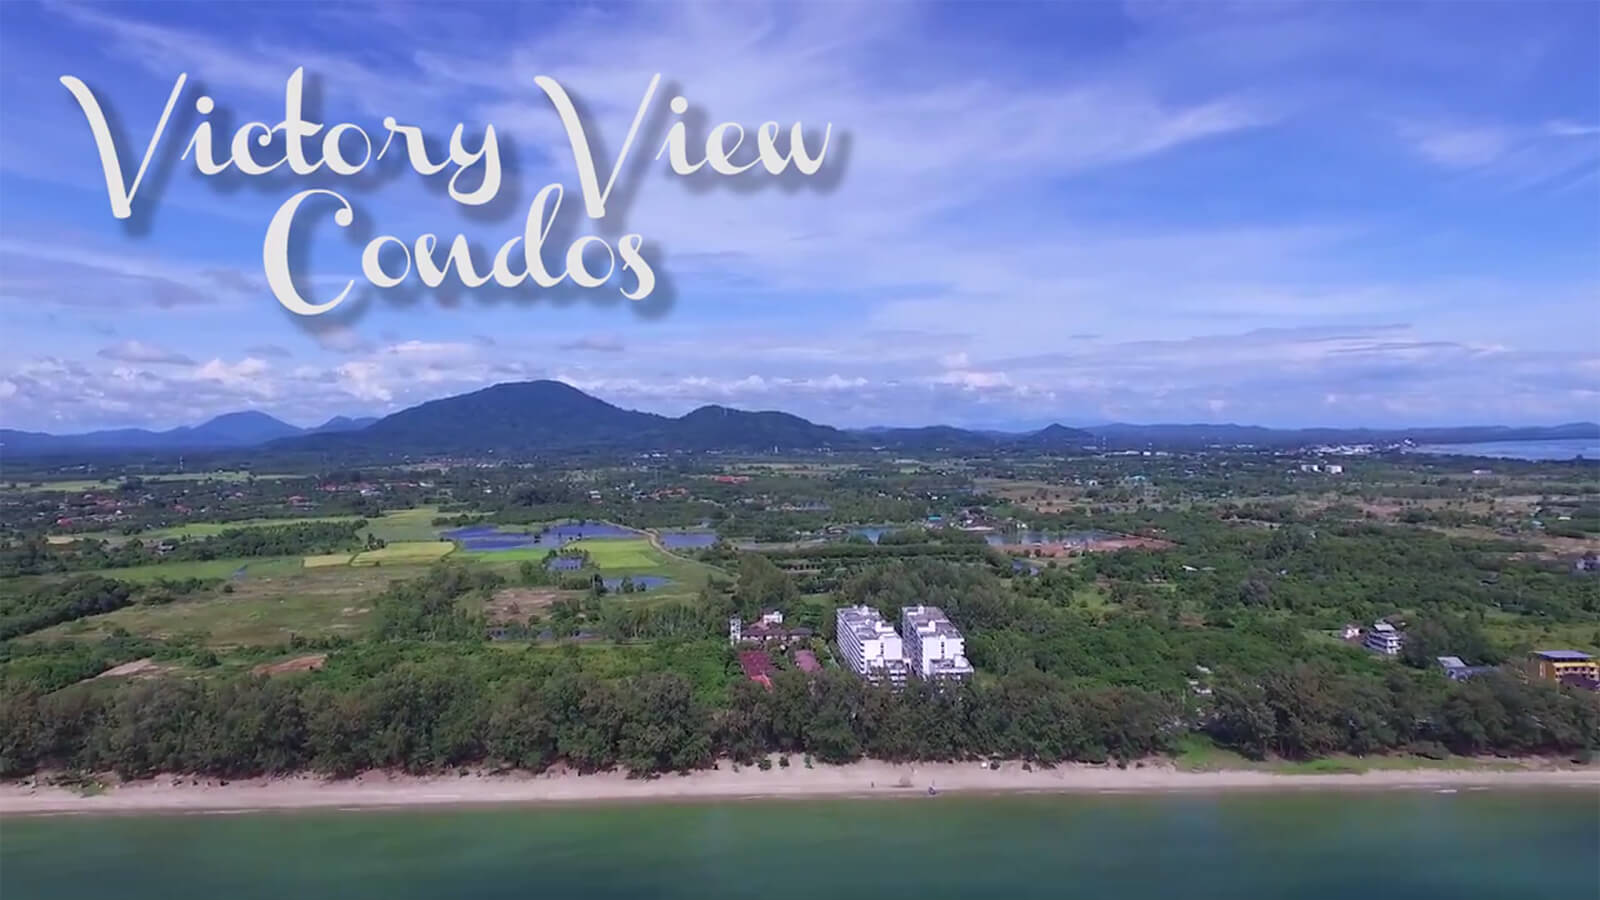 Victory View condos are the best choice in Mae Rumphueng for digital nomads or those on a budget.